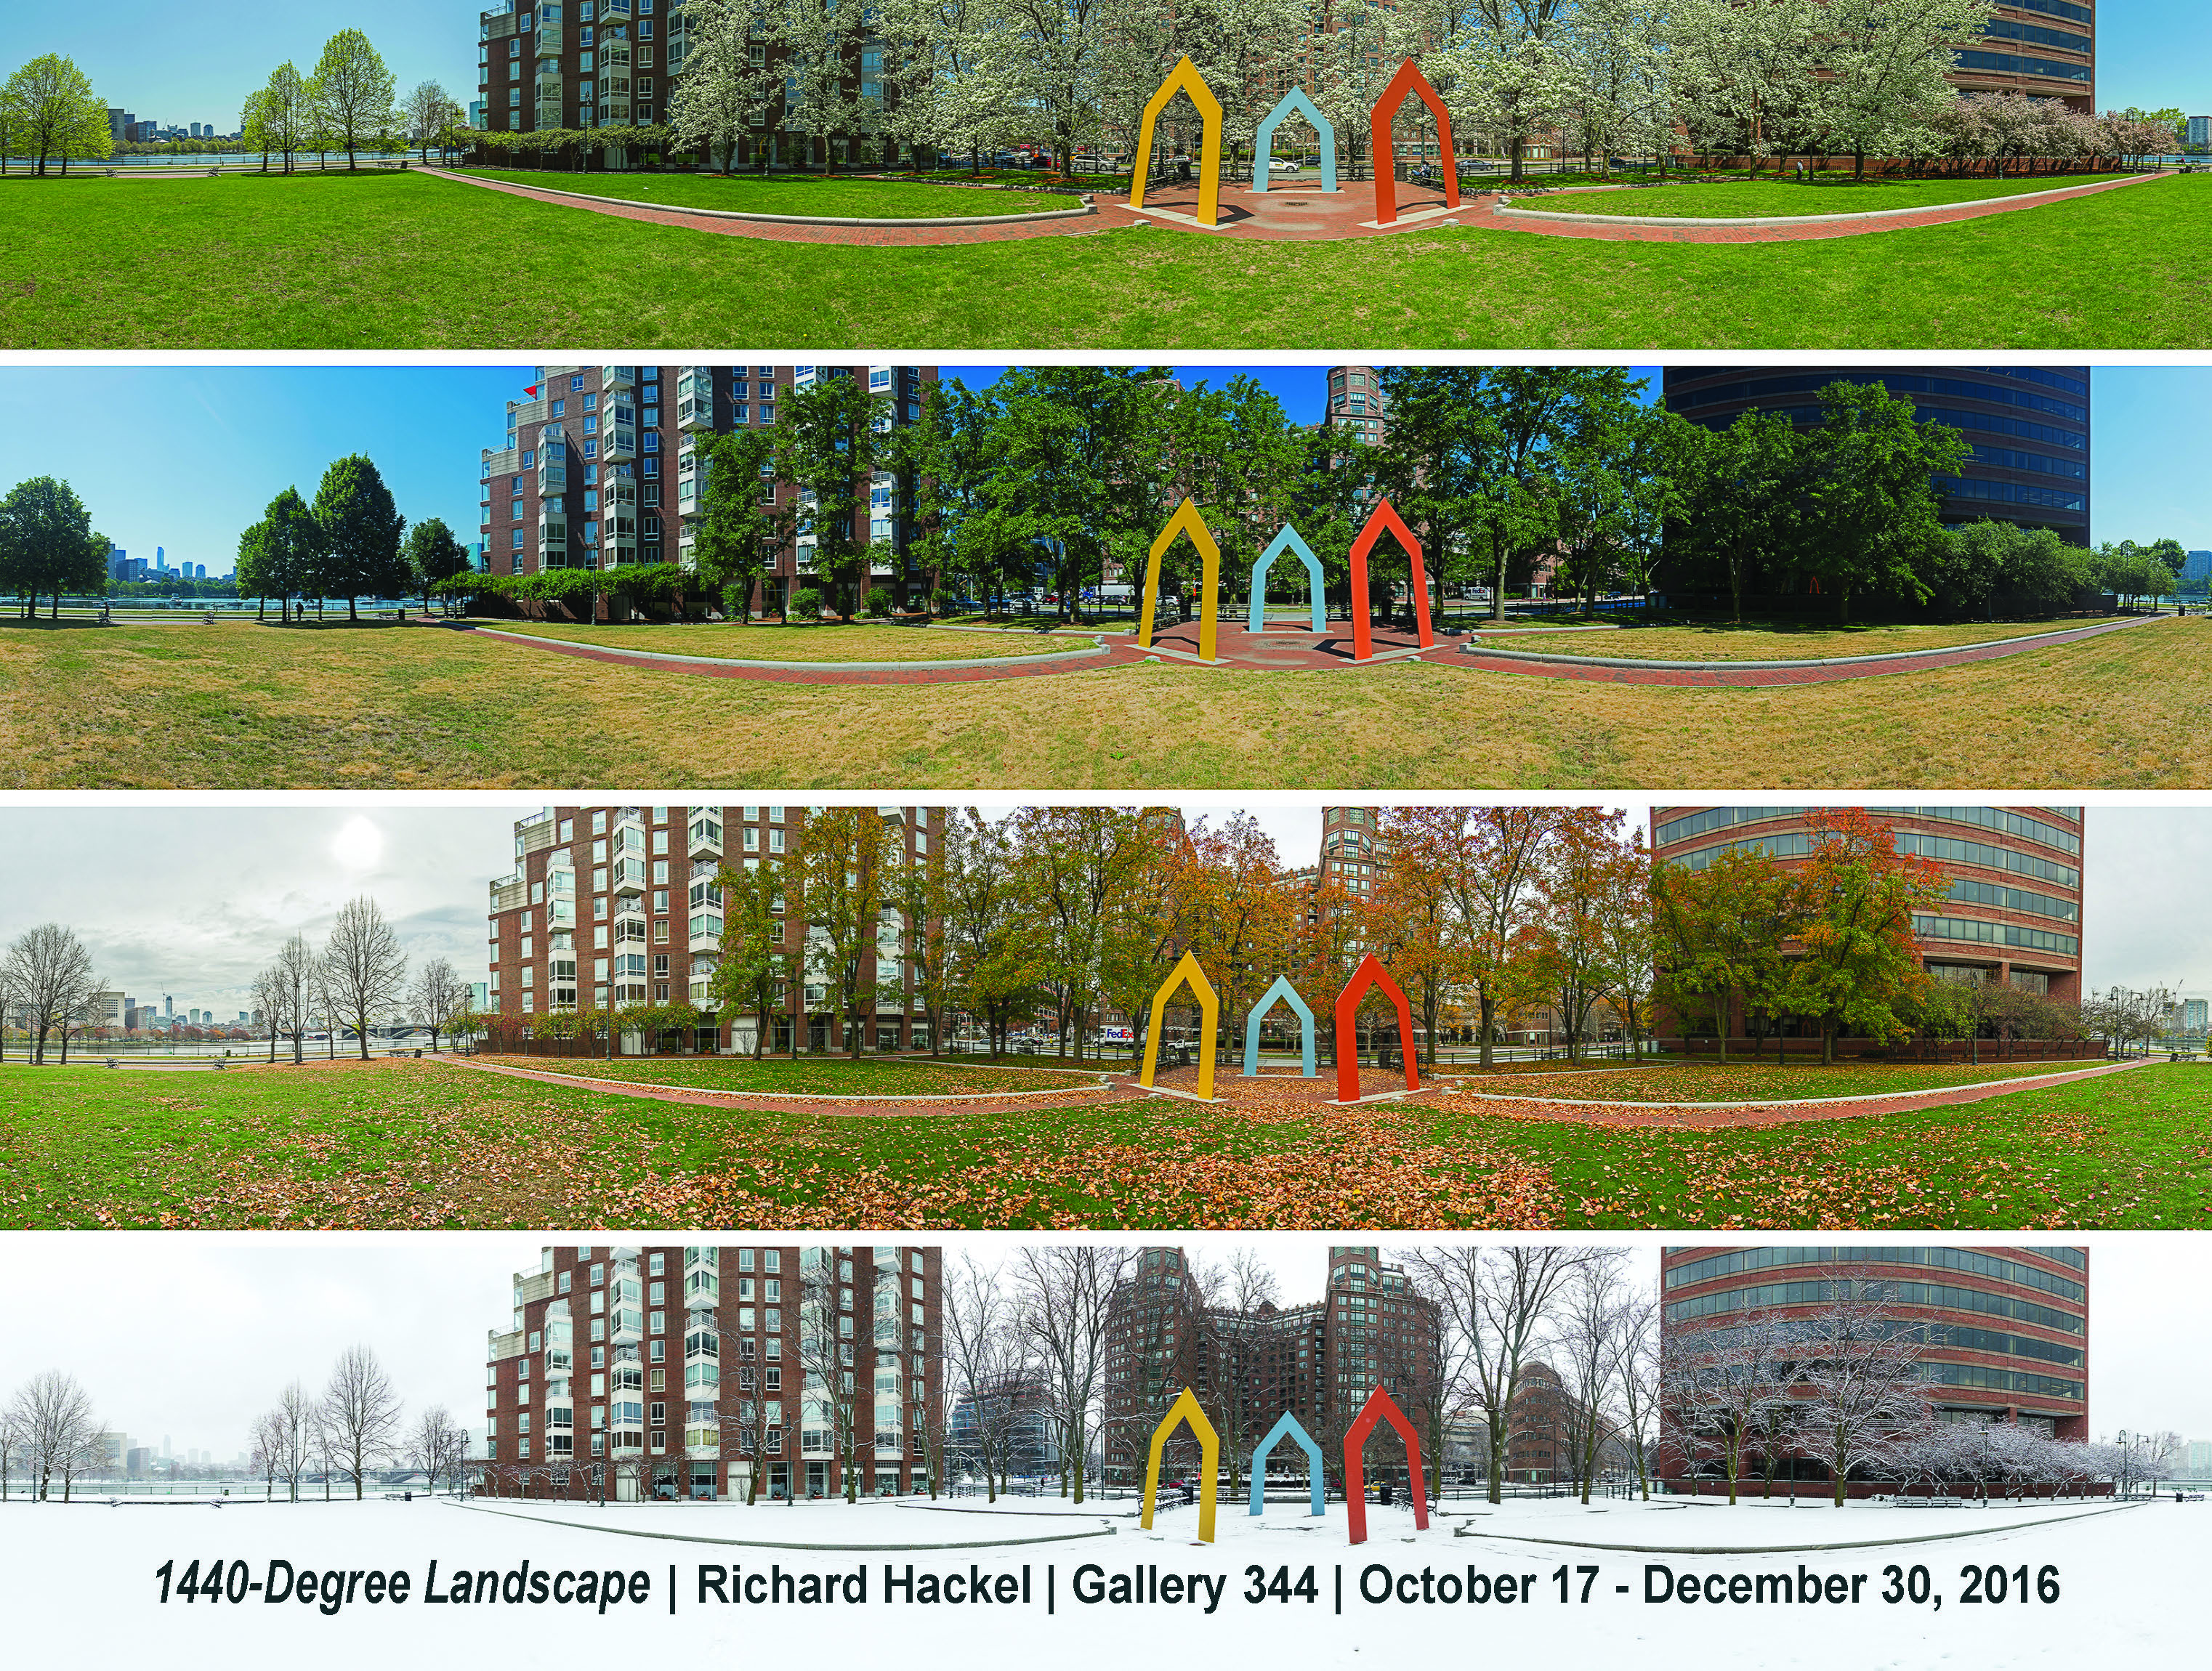 Richard Hackel's Panoramic Photography in different season with event date